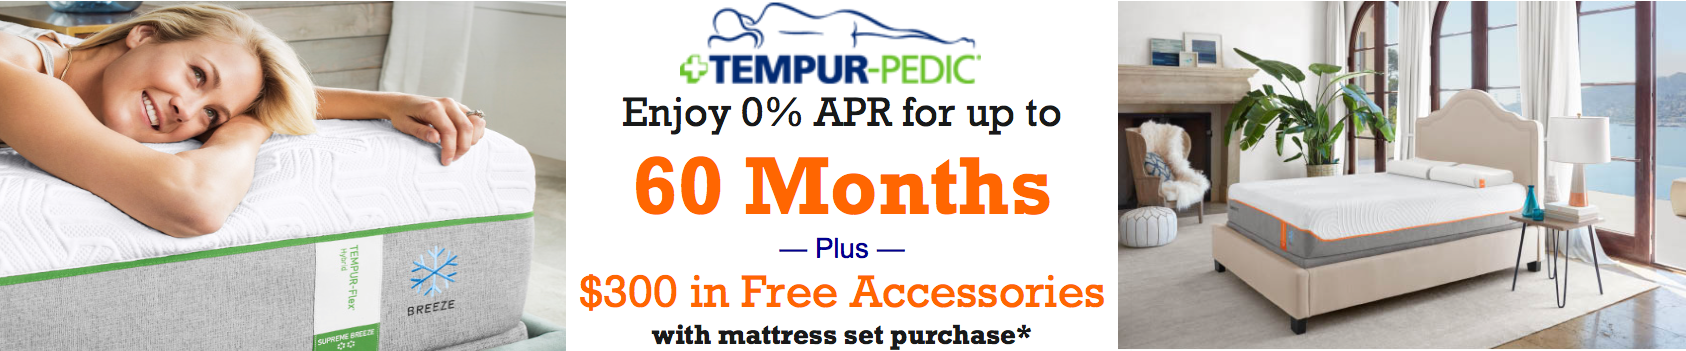 Tempur-pedic sale